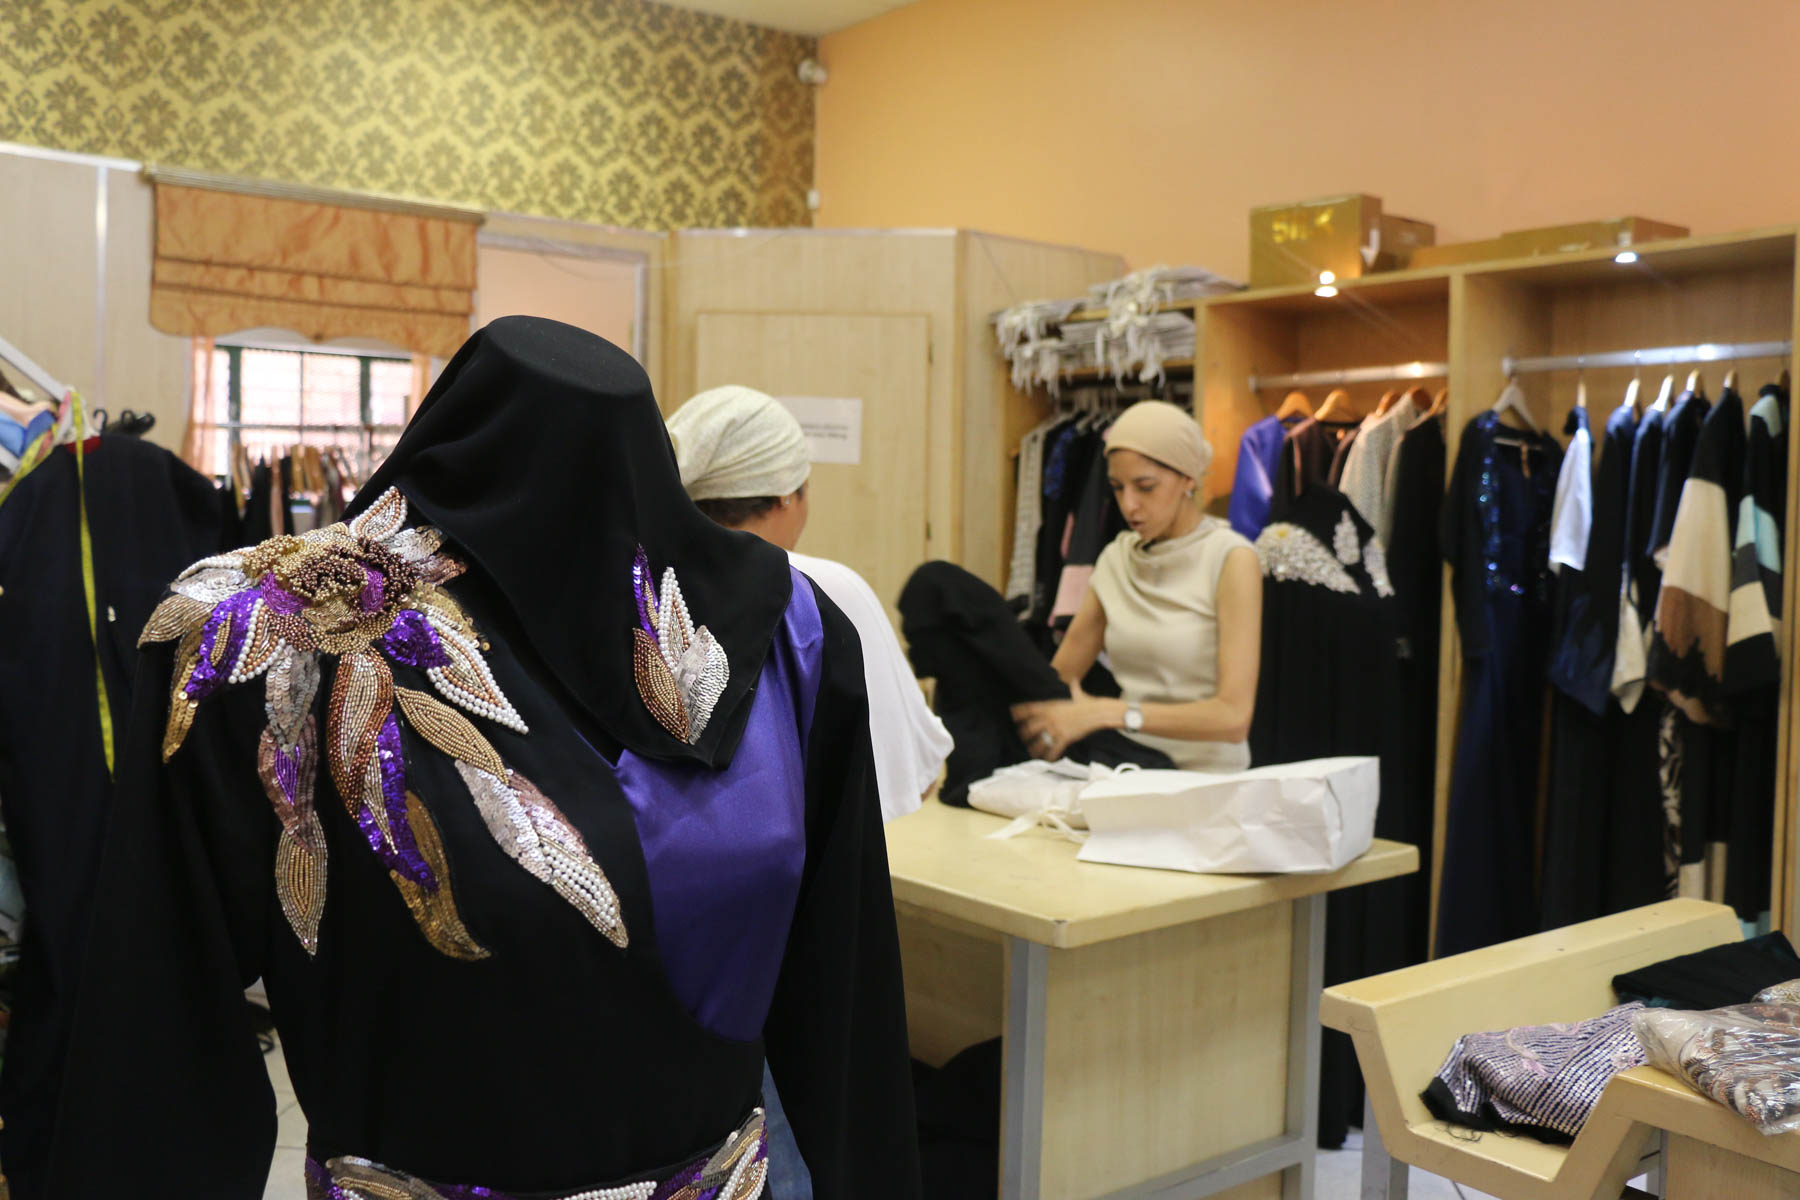 Fashion Woven Into The Fabric Of Fordsburg Mayfair